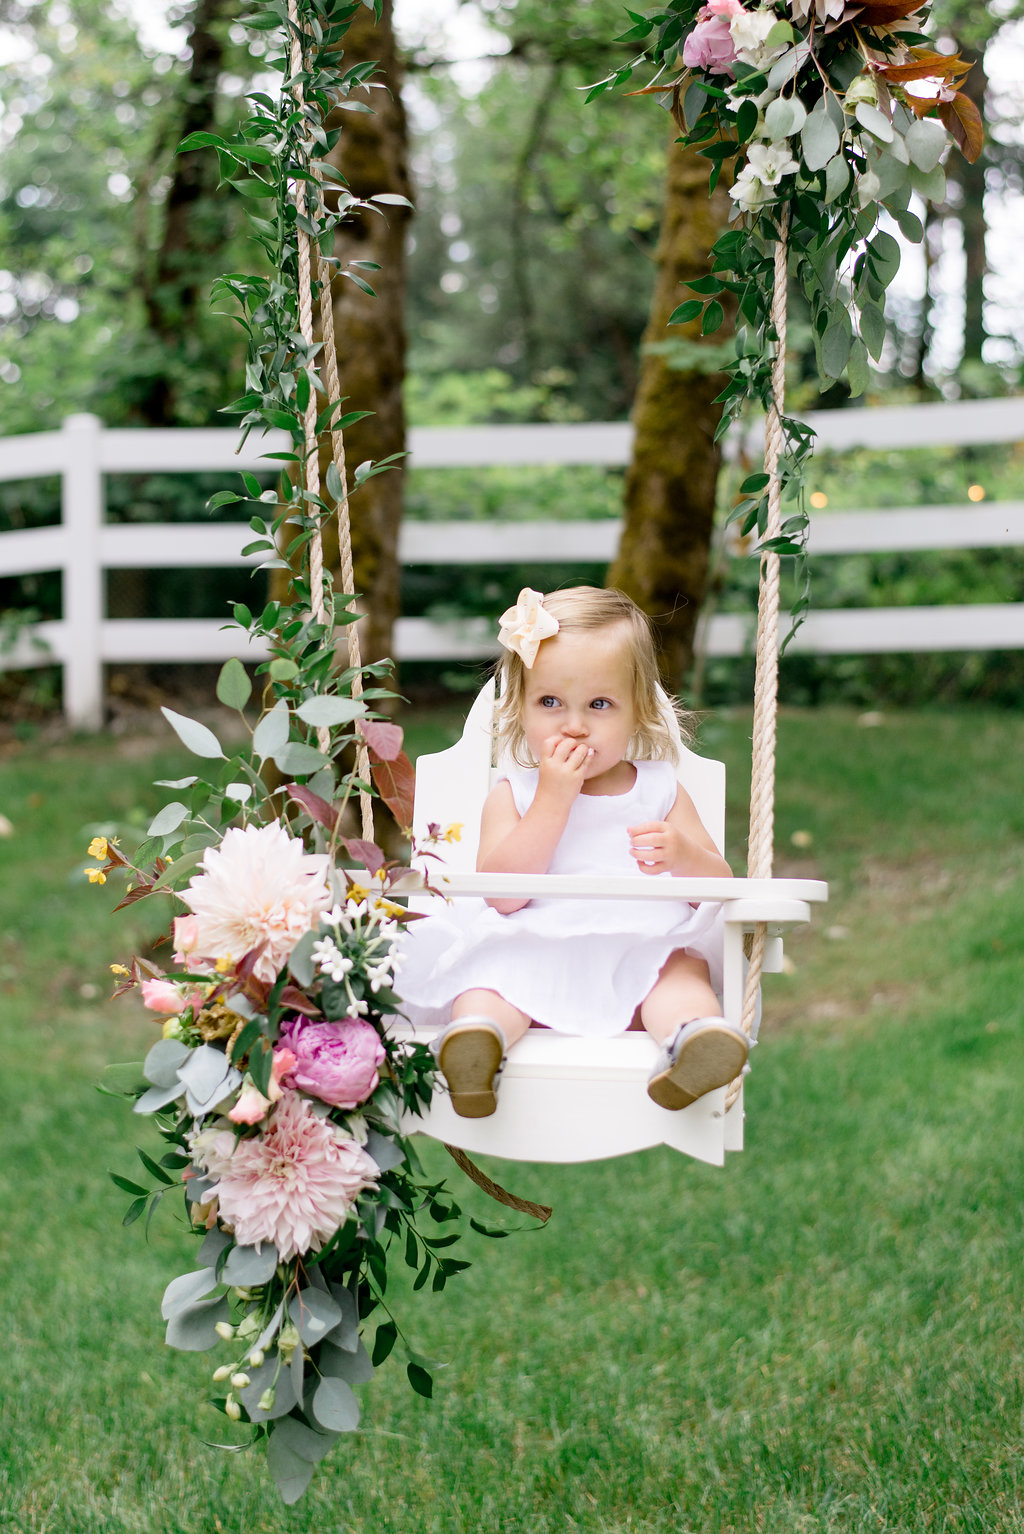 Lillya sitting on floral swing